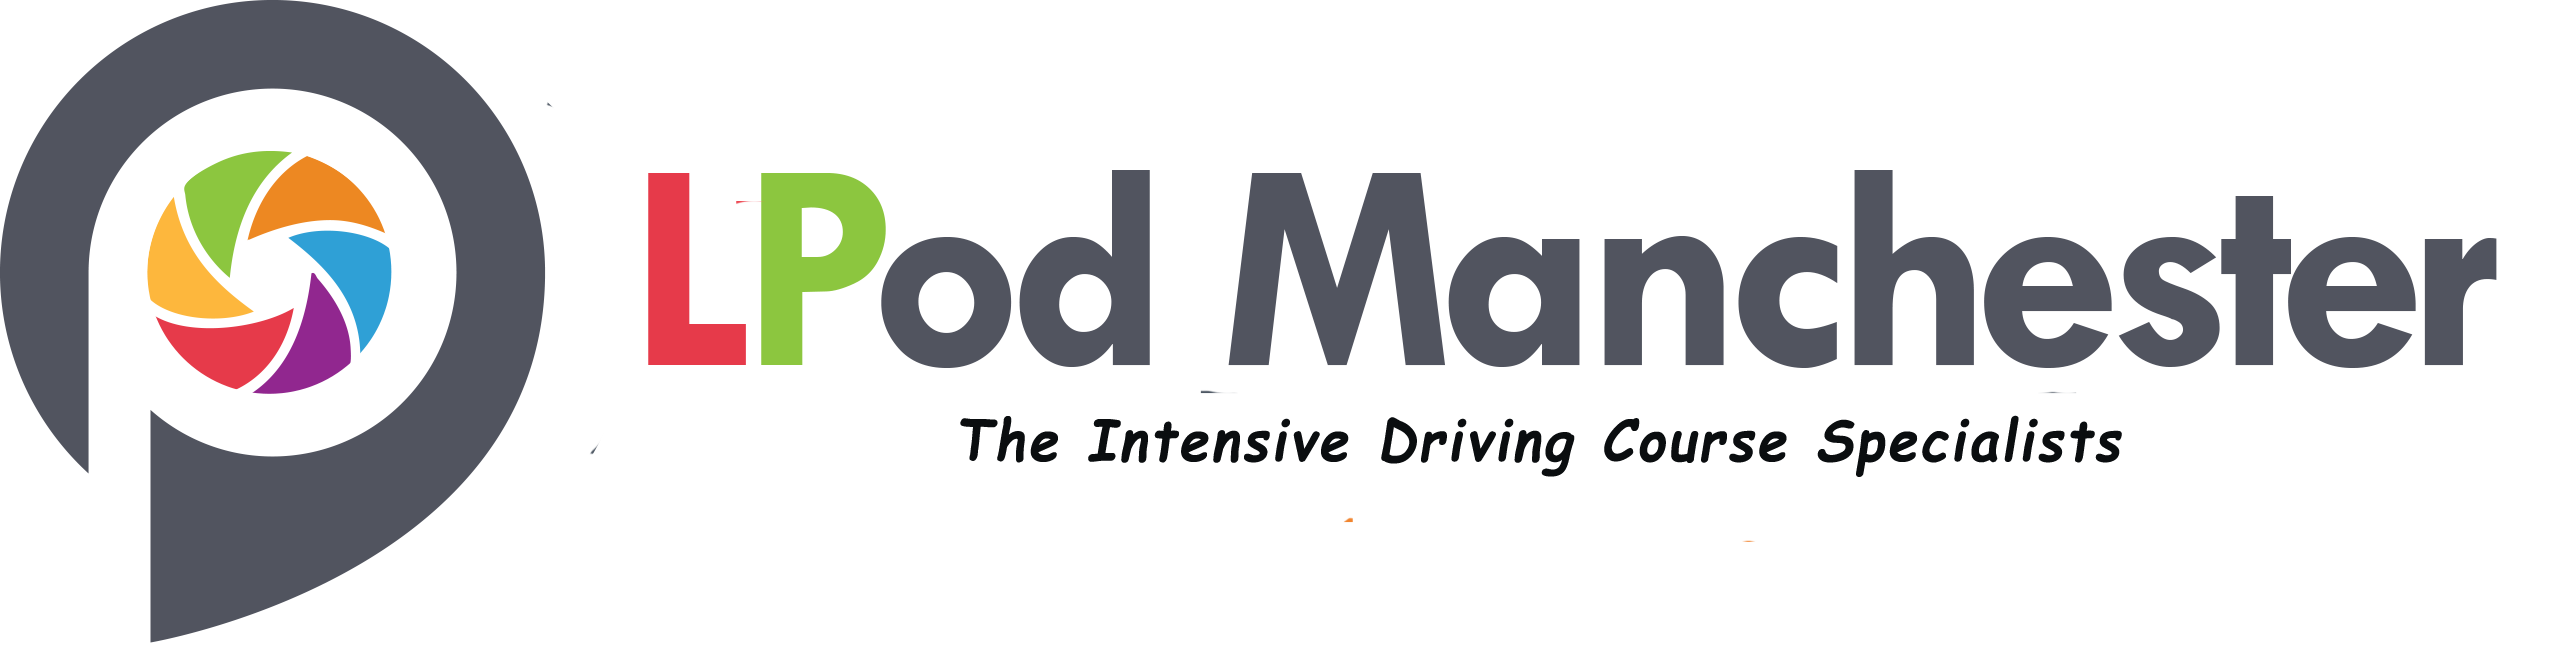 intensive driving courses manchester, intensive driving lessons manchester, intensive driving school manchester